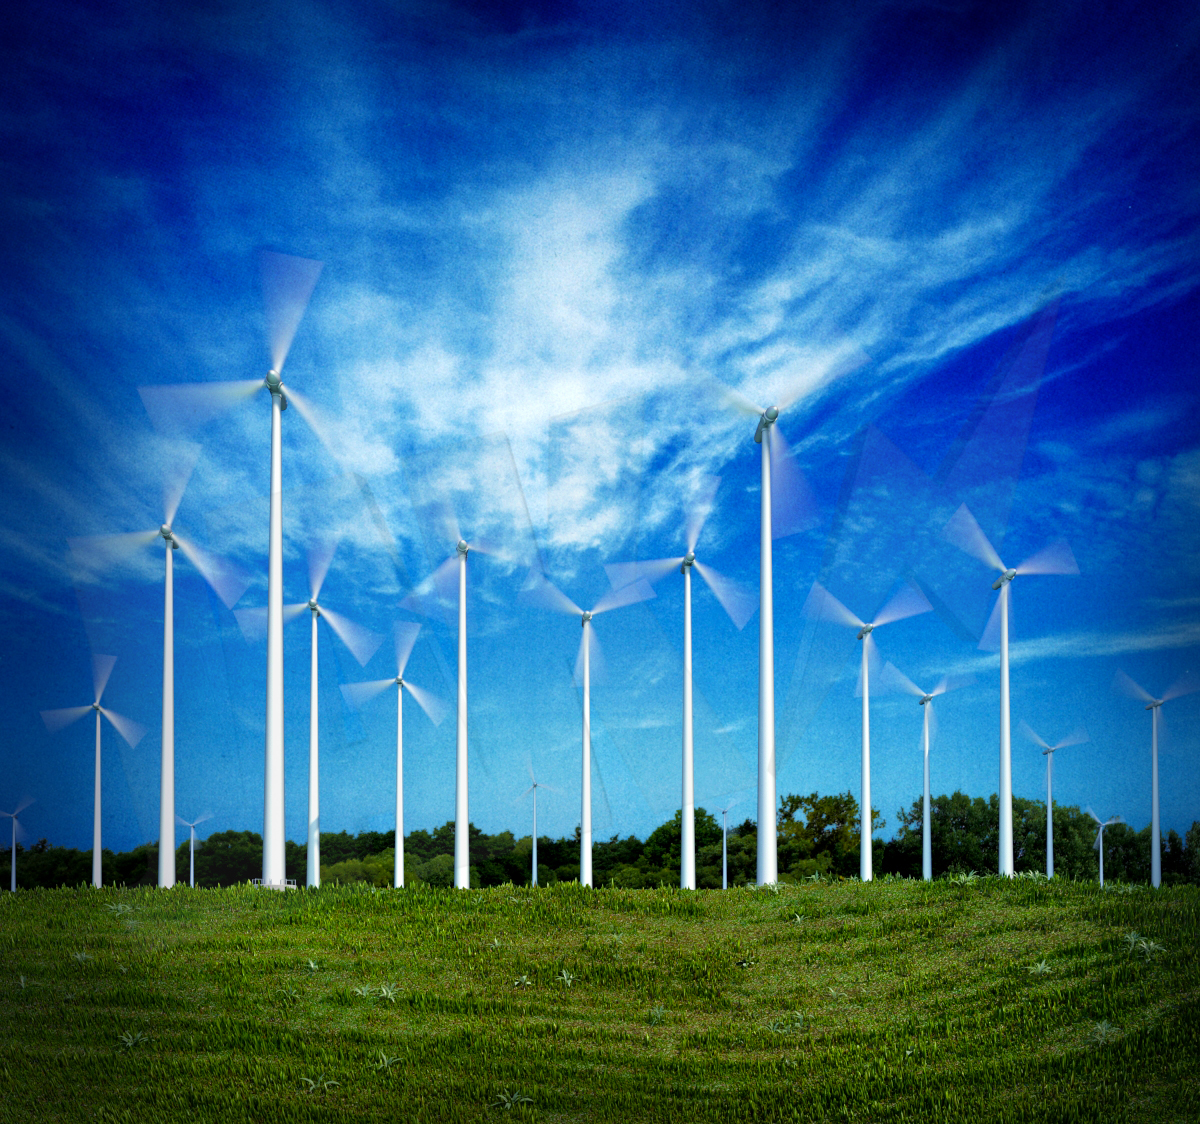 Jonathan Kaplan: Green Energy: 3d Renderings of Wind Turbines and ...